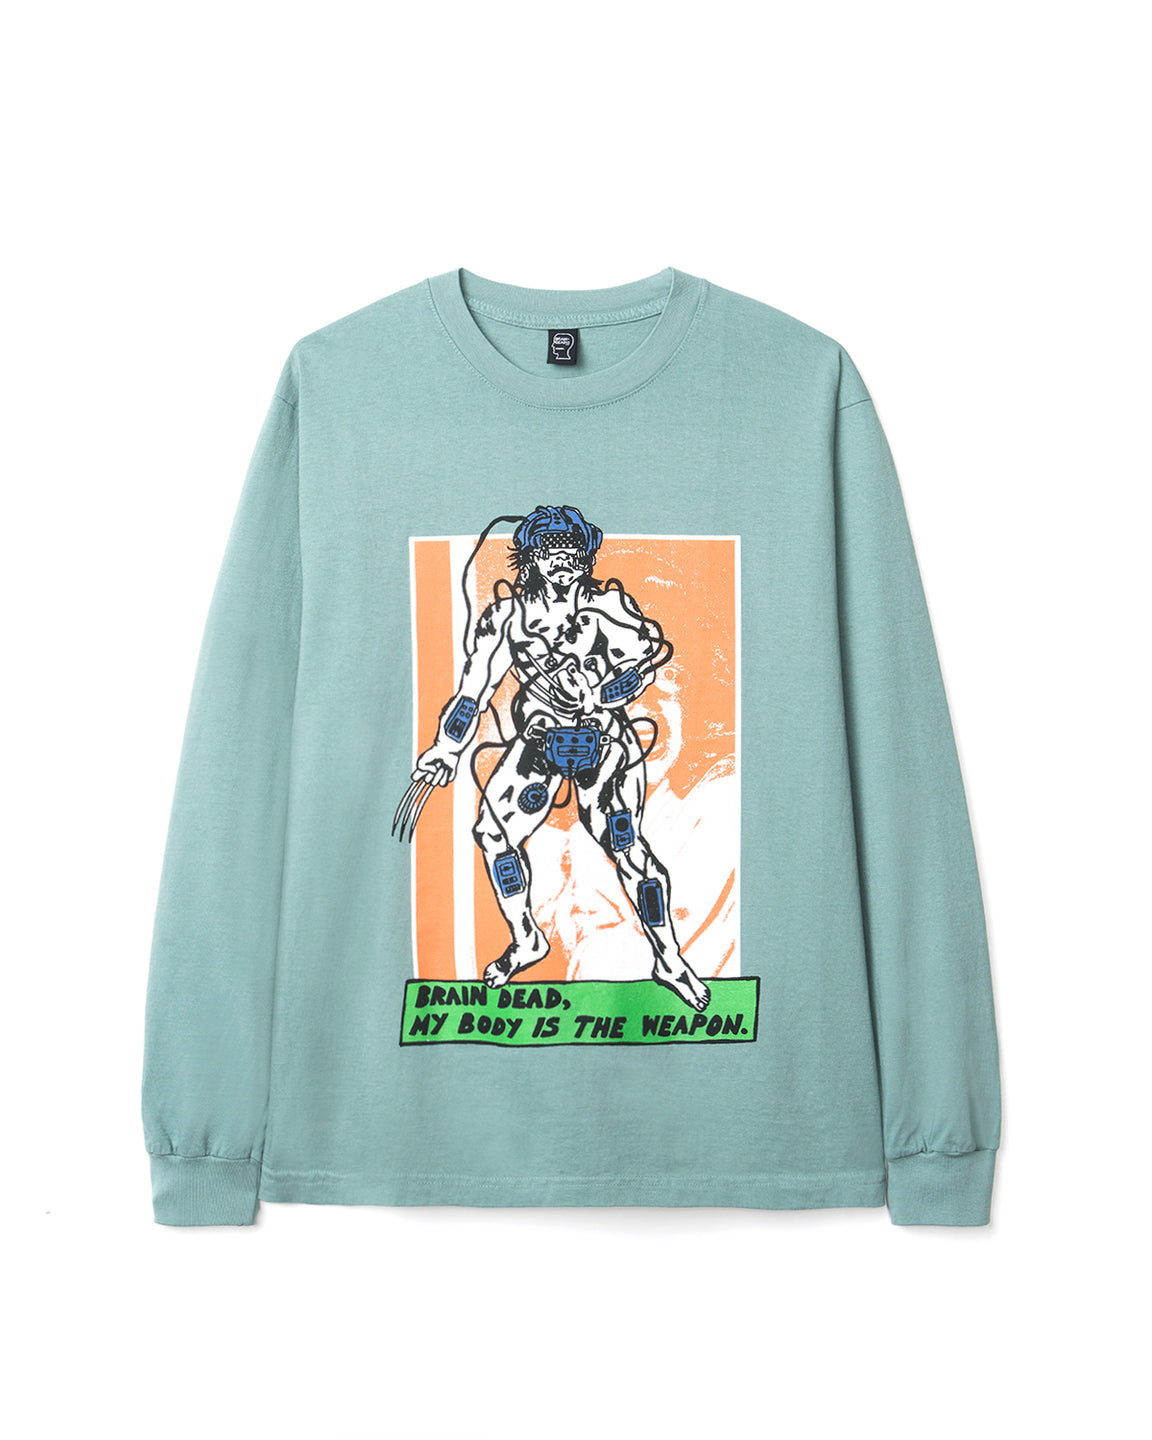 Weaponized Long Sleeve Tee - Atlantic Green - Brain Dead